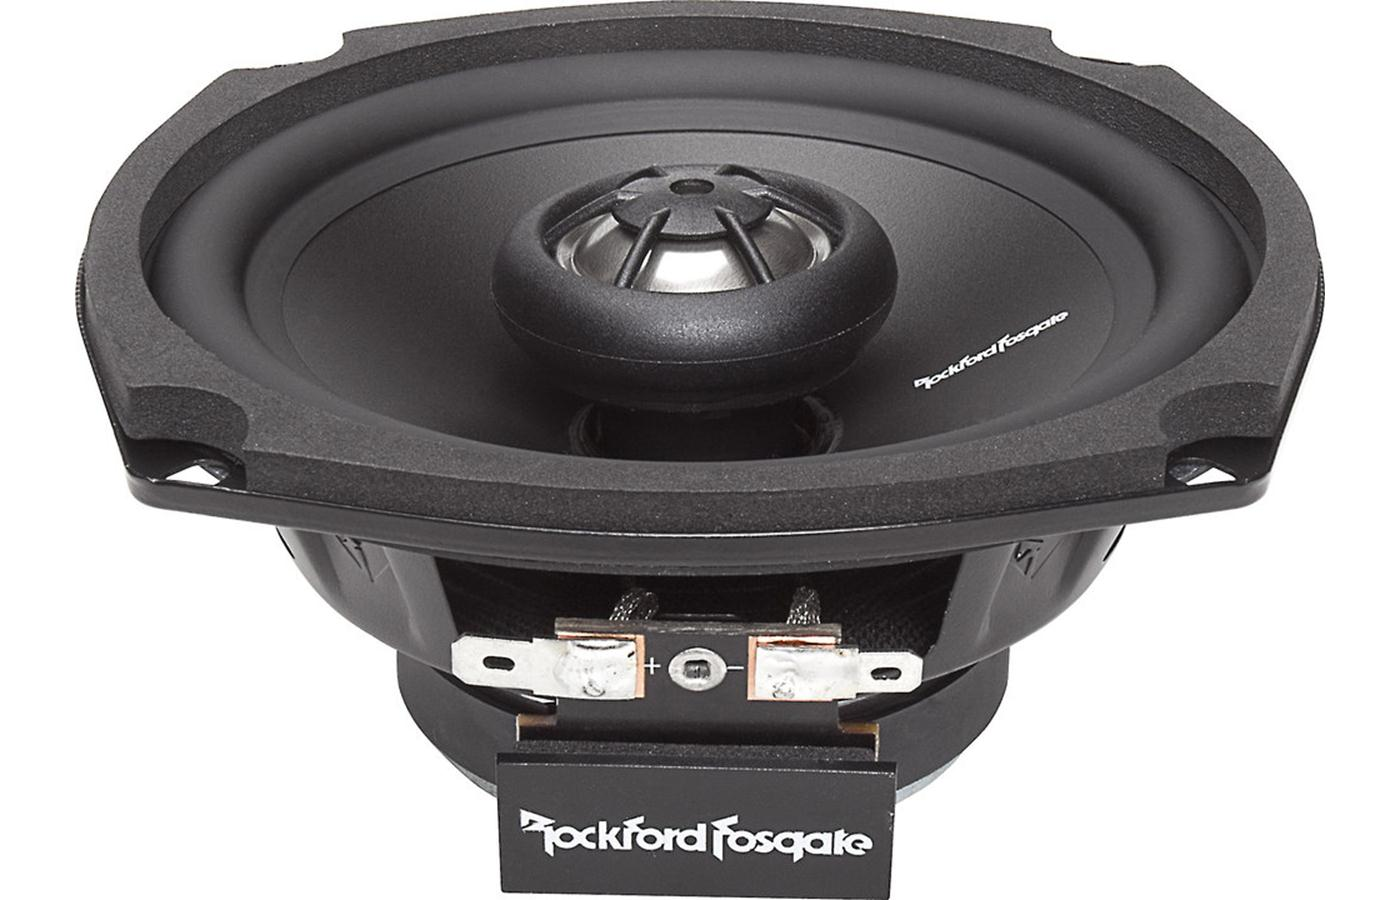 Rockford Fosgate Car Speakers Speaker Systems eBay